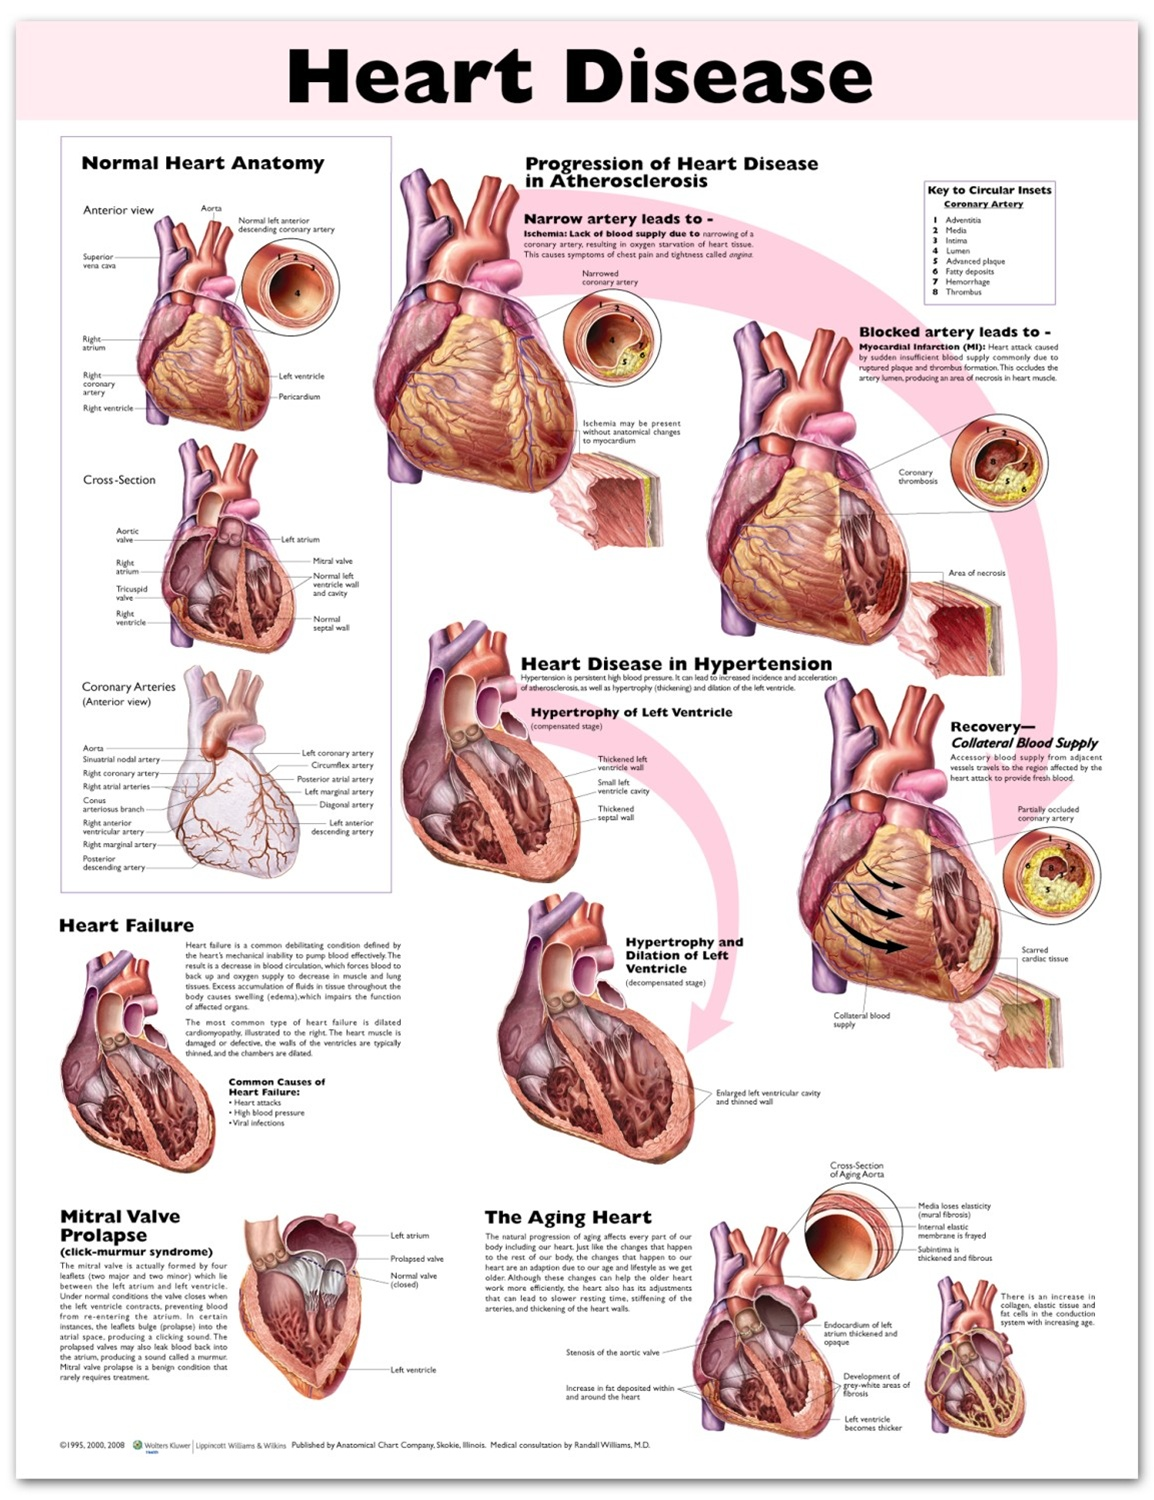 Heart Disease Anatomical Chart - Anatomy Models and Anatomical Charts